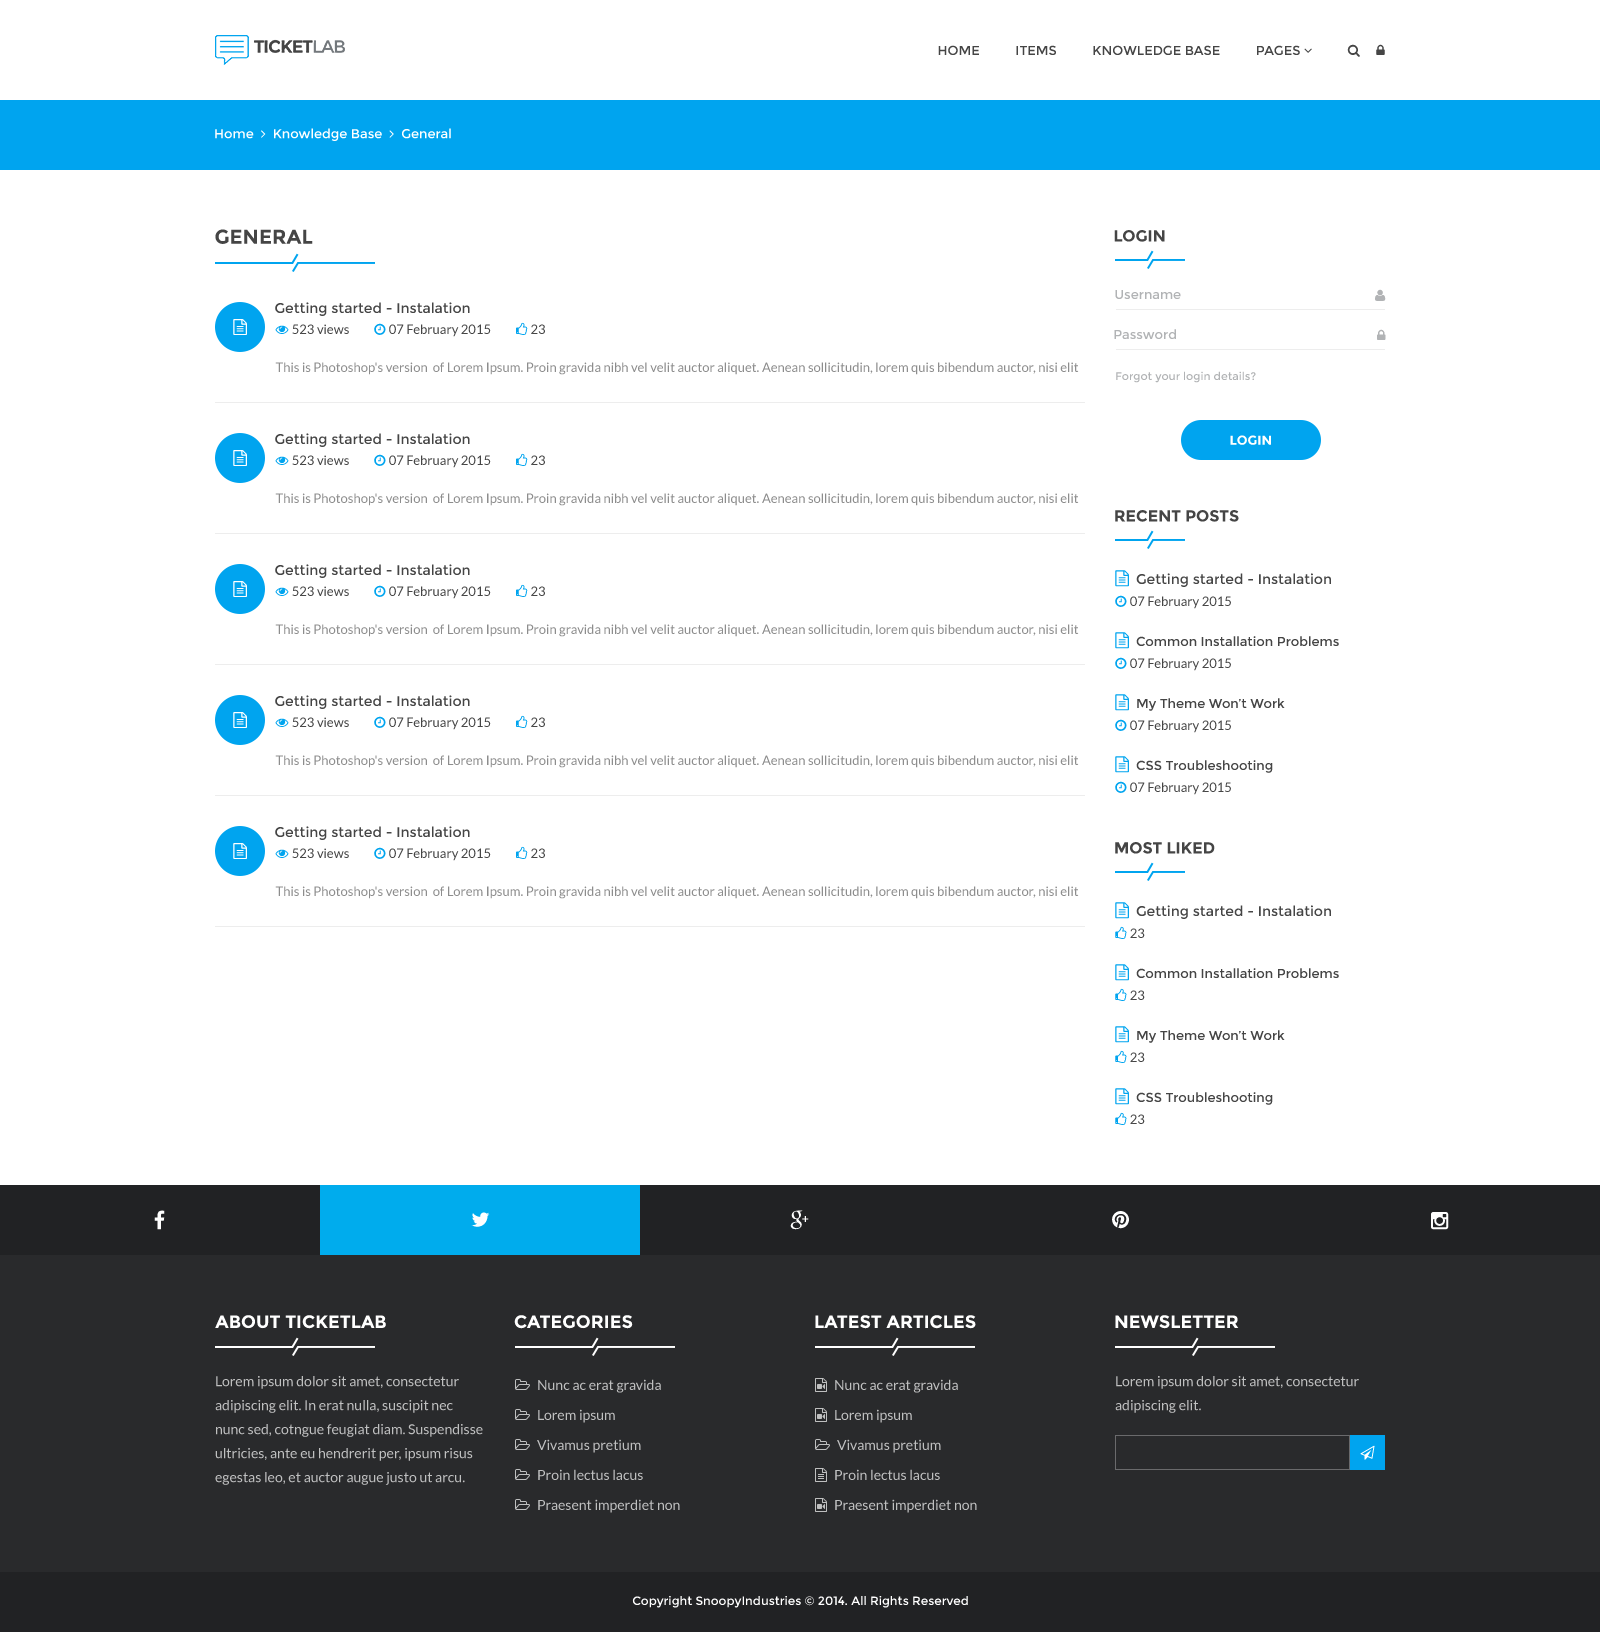 Ticketlab helpdesk support and knowledge base psd template by 00bannerg 01indexg 02index copyg 03index copyg 04loginregister copyg 05knowledge base copyg 06knowledgebasecategory maxwellsz